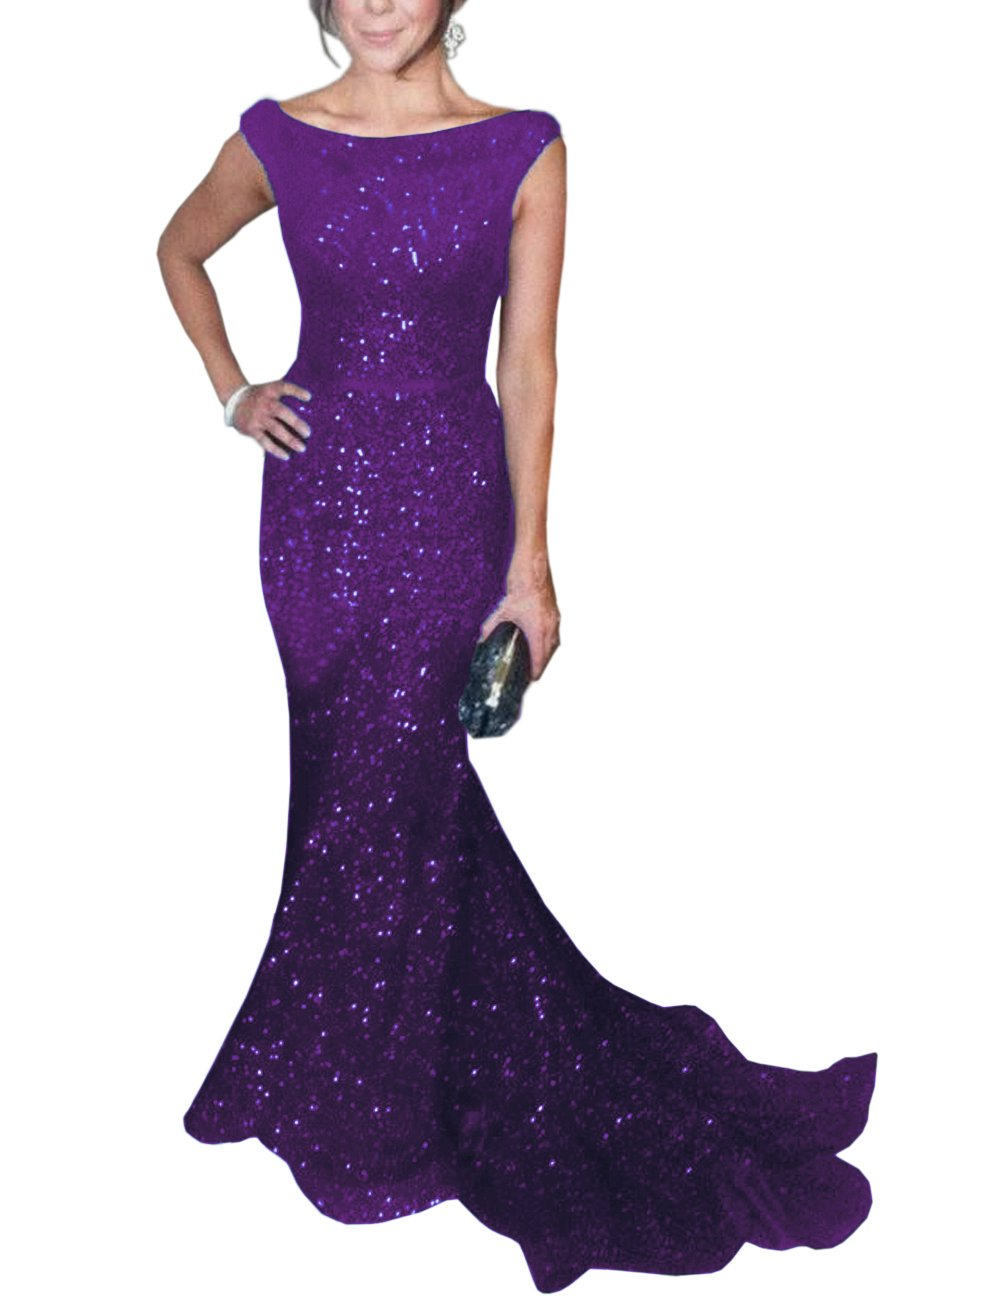 SOLOVEDRESS Women's Mermaid Sequined Formal Evening Dress for Wedding Prom Gown (US 22 Plus,Purple)